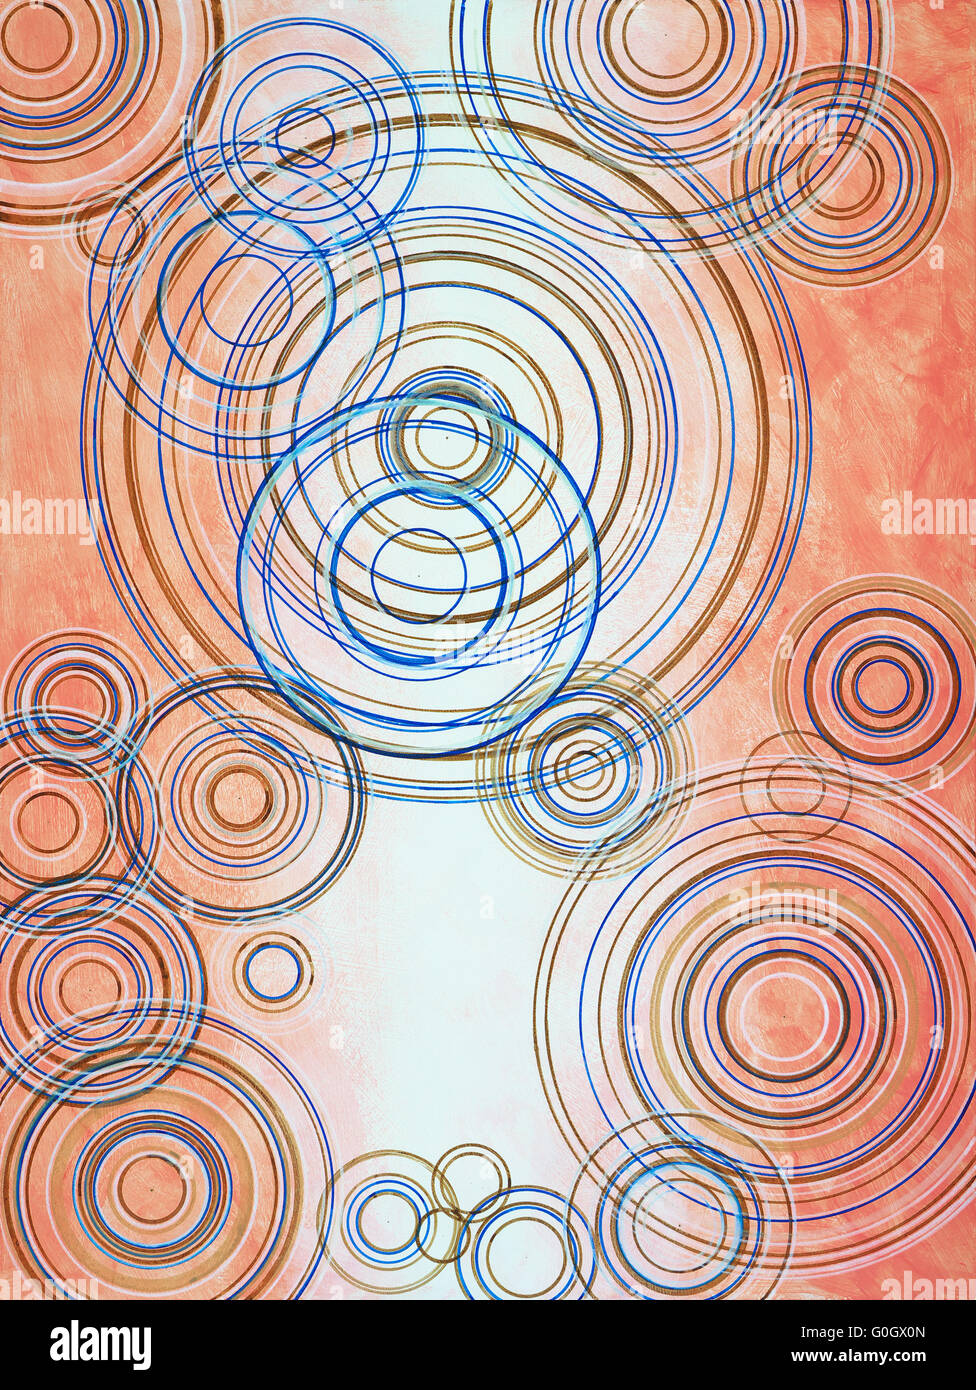 An abstract painting of concentric rings - Stock Image